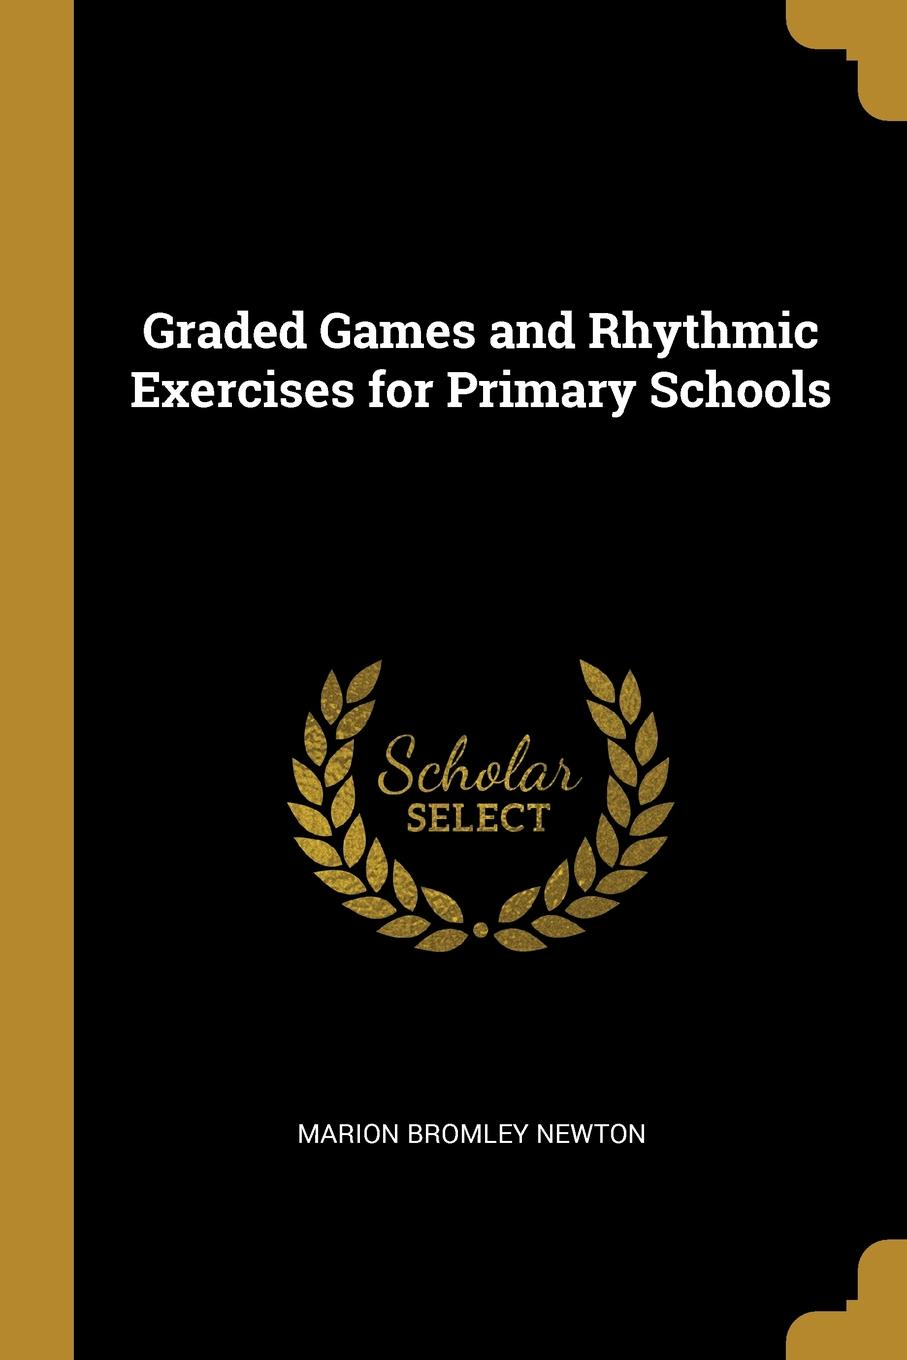 Marion Bromley Newton. Graded Games and Rhythmic Exercises for Primary Schools